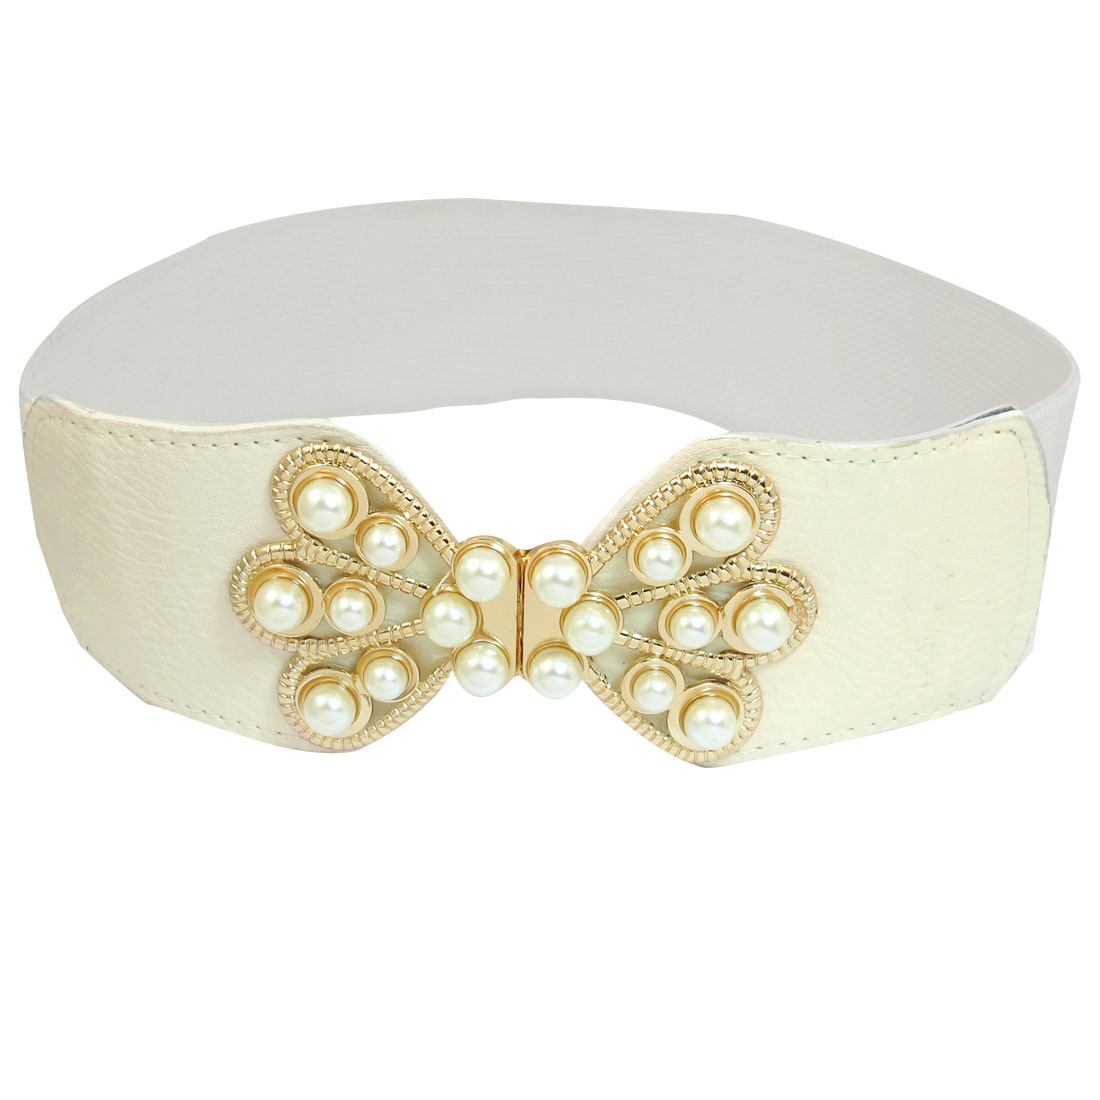 Women Plastic Beads Inlaid Bowknot Interlocking Buckle Elastic Waist Belt White